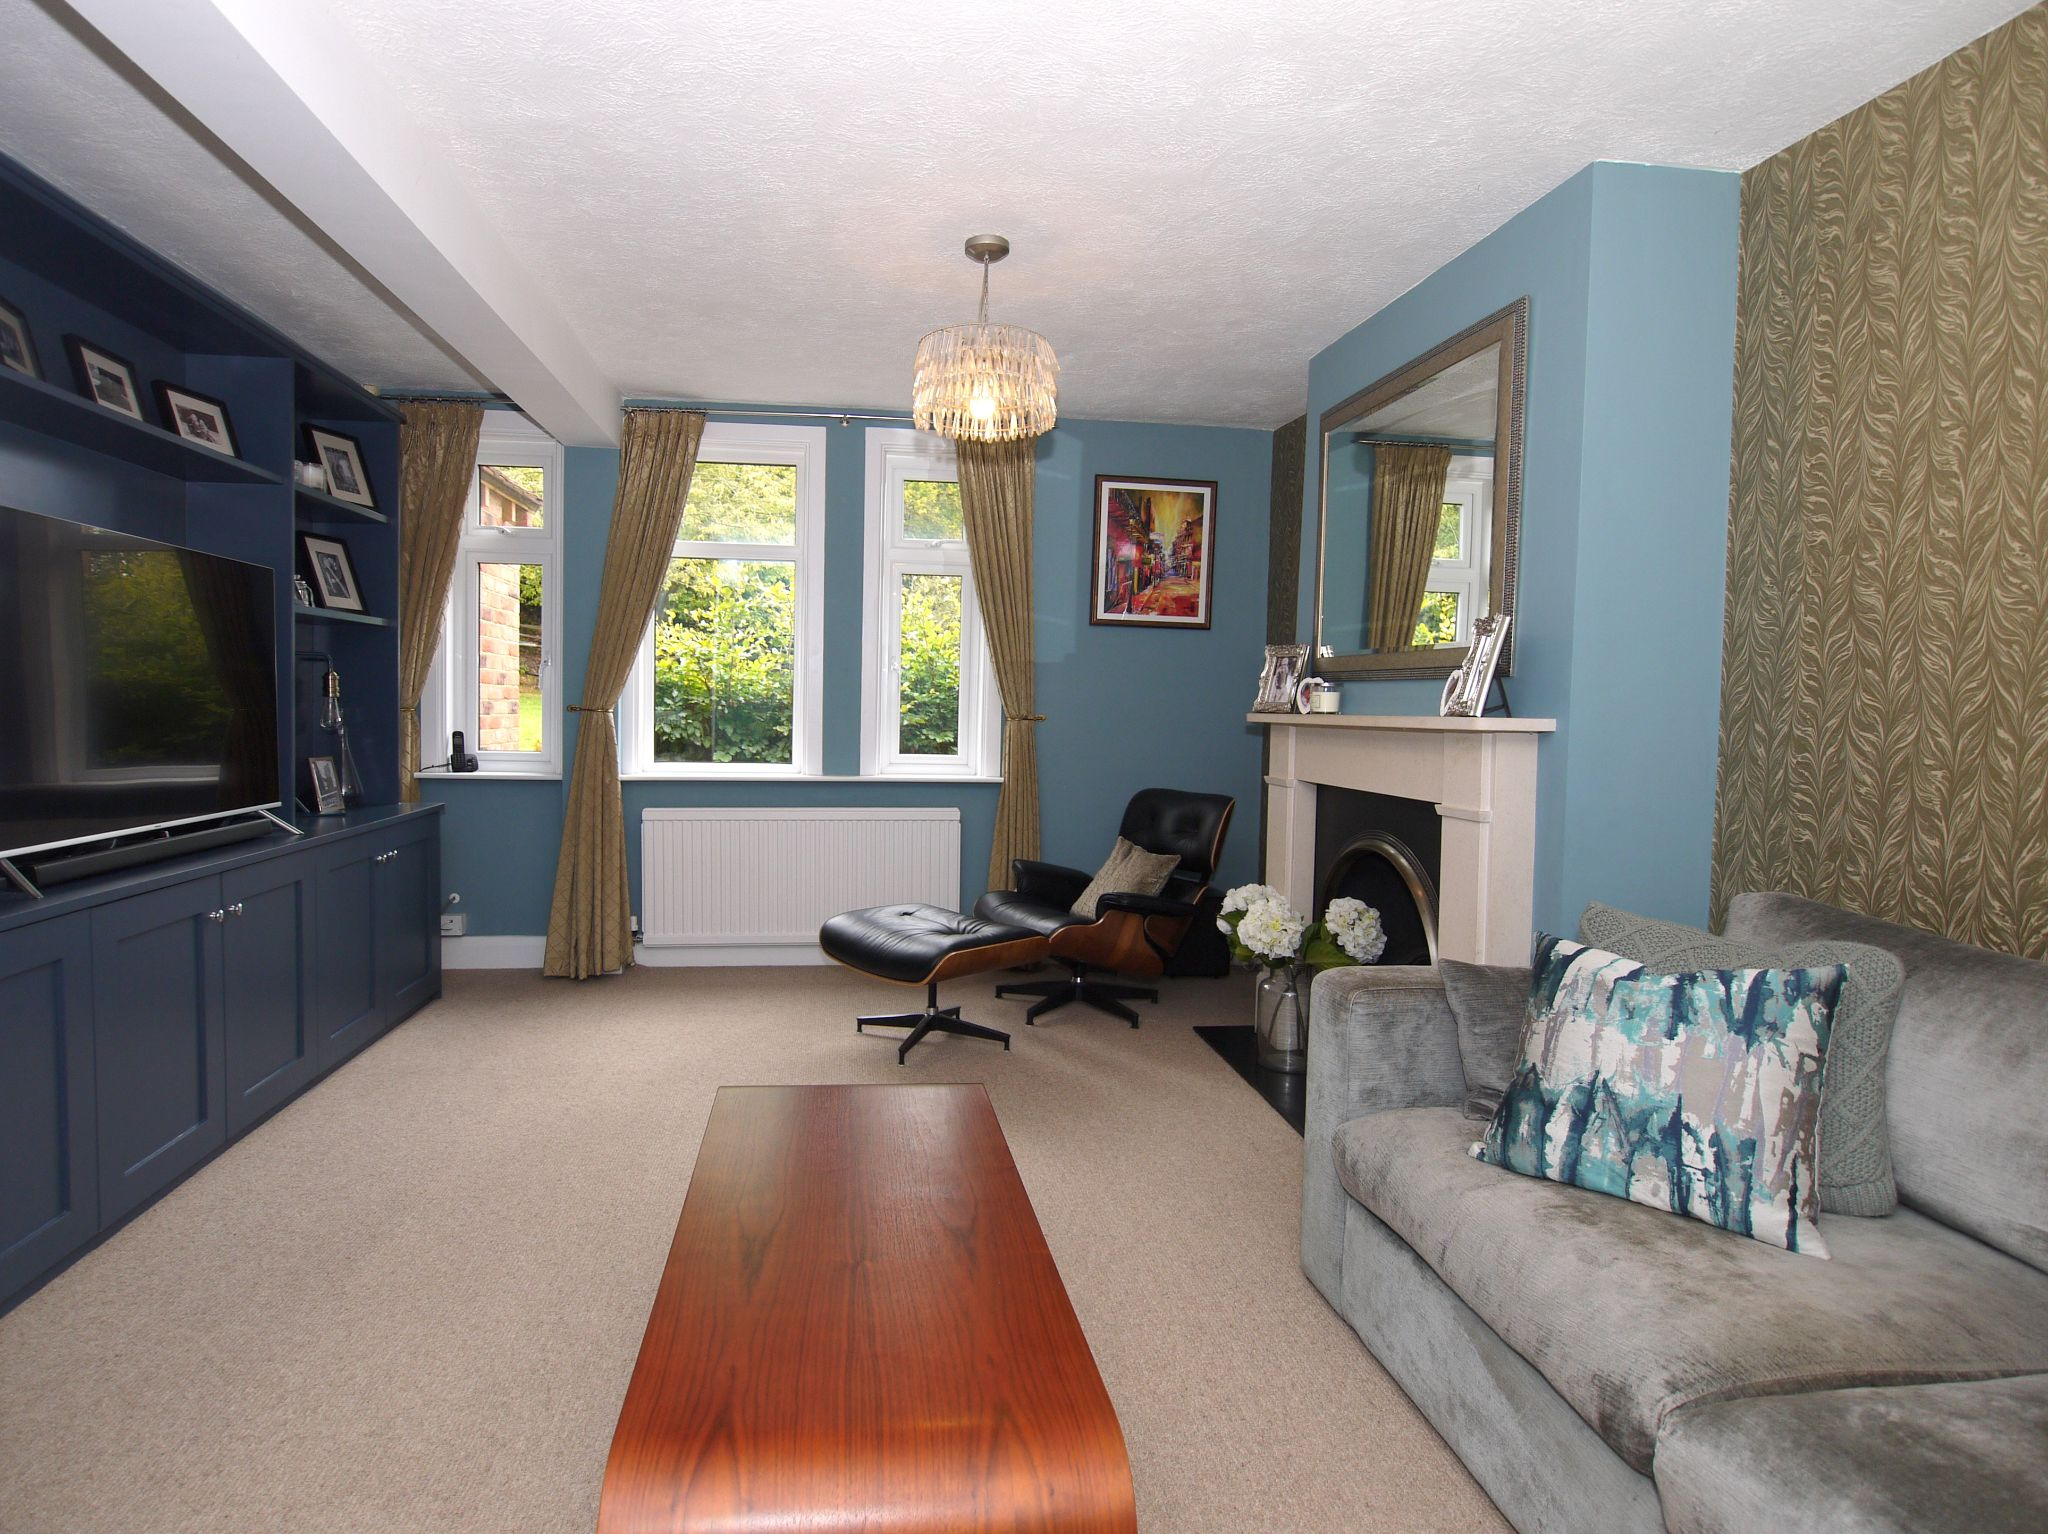 3 bedroom semi-detached house Sold in Sevenoaks - Photograph 7